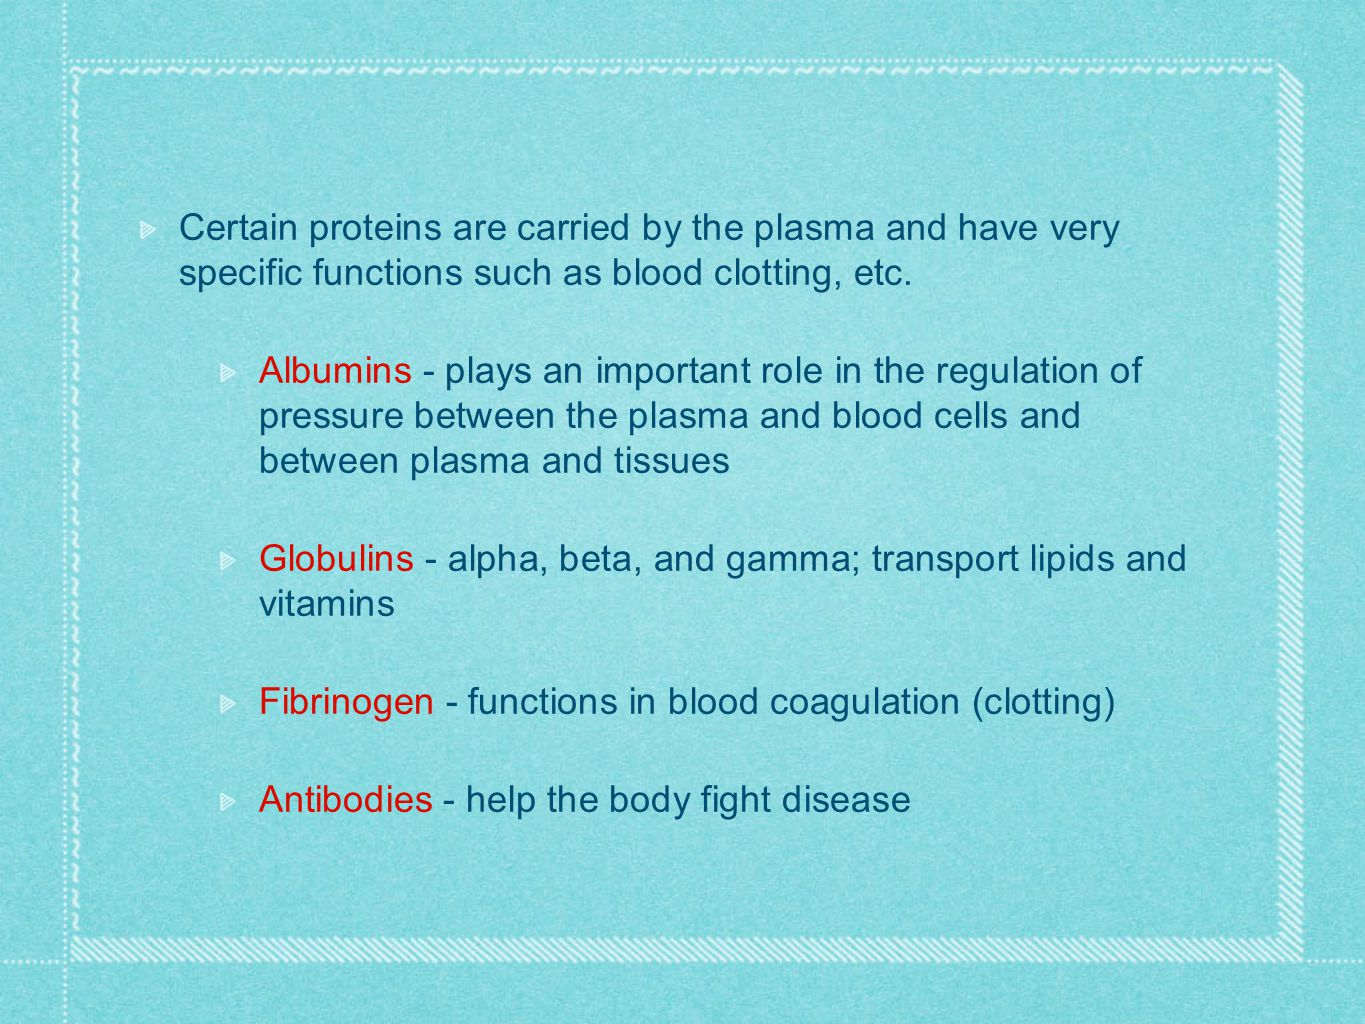 Certain proteins are carried by the plasma and have very specific functions such as blood clotting, etc.